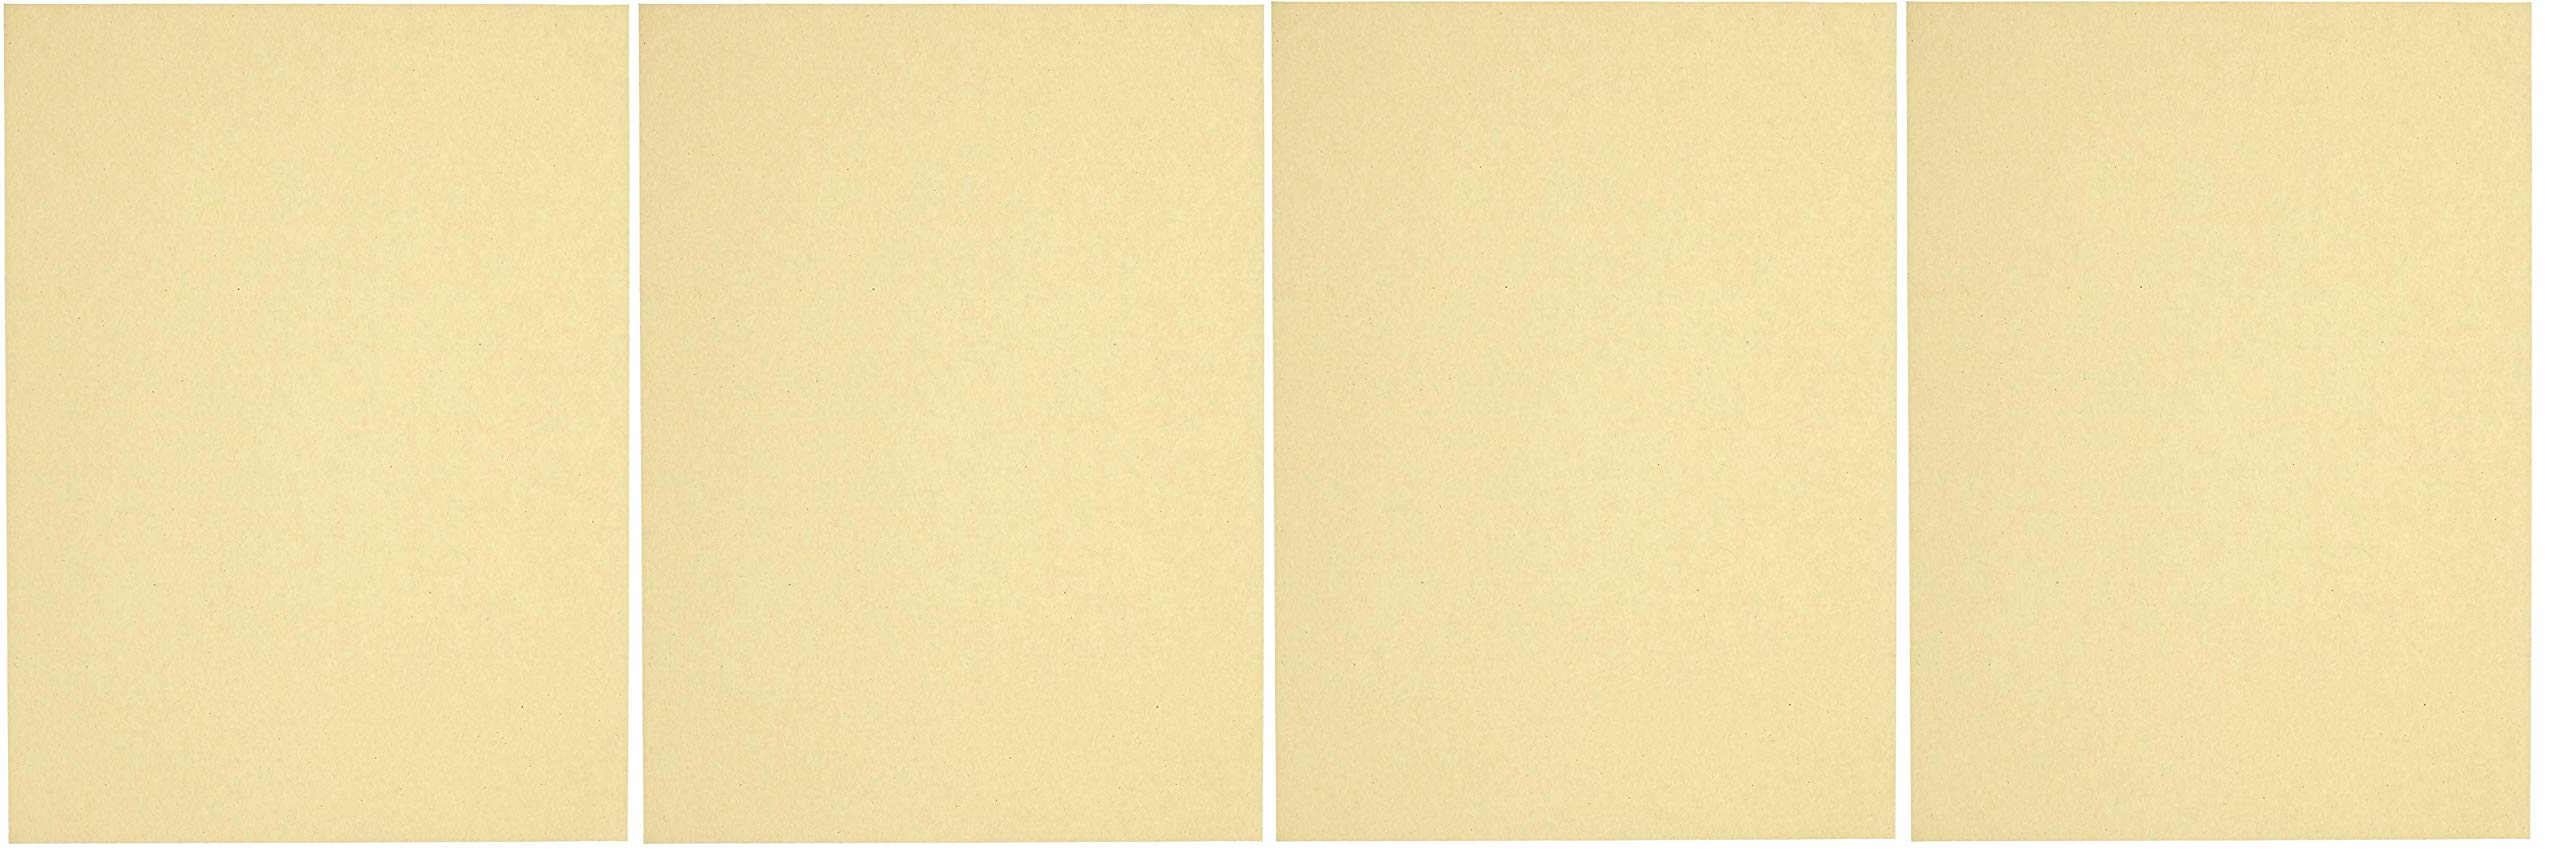 Sax Multi-Purpose Drawing Paper, 56 lbs, 9 x 12 Inches, Manila Cream, Pack of 500 (4-Pack) by Sax